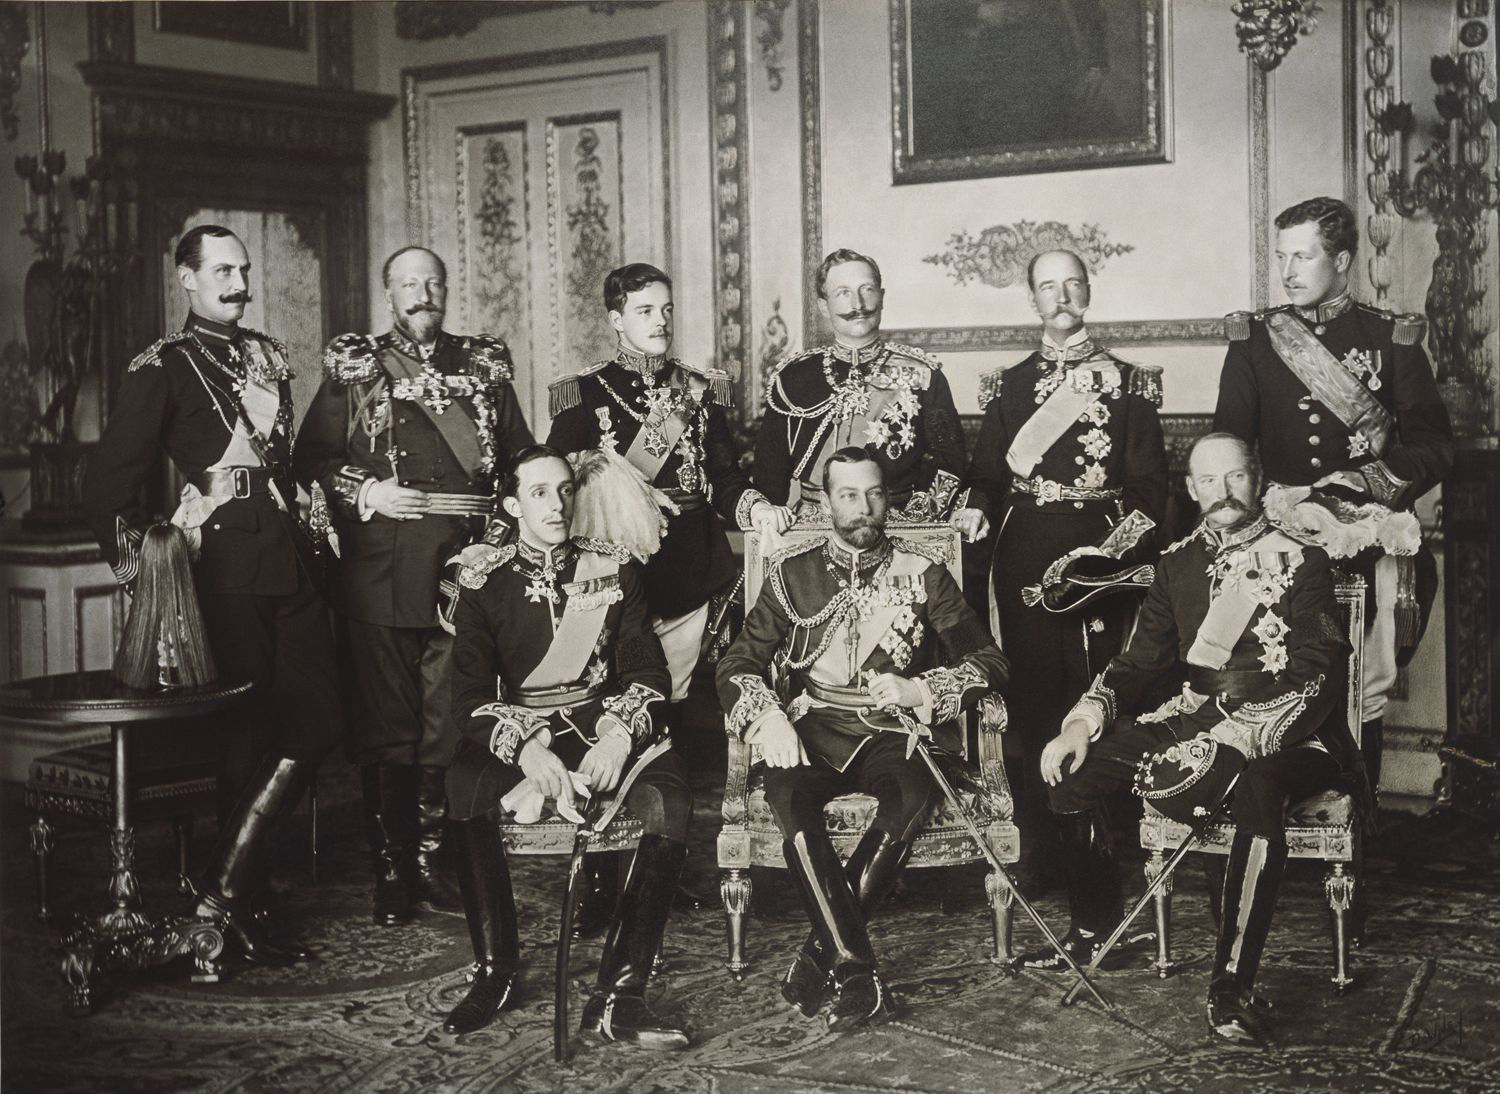 The Nine Sovereigns of Europe at the Funeral of King Edward VII of Britain in 1910.